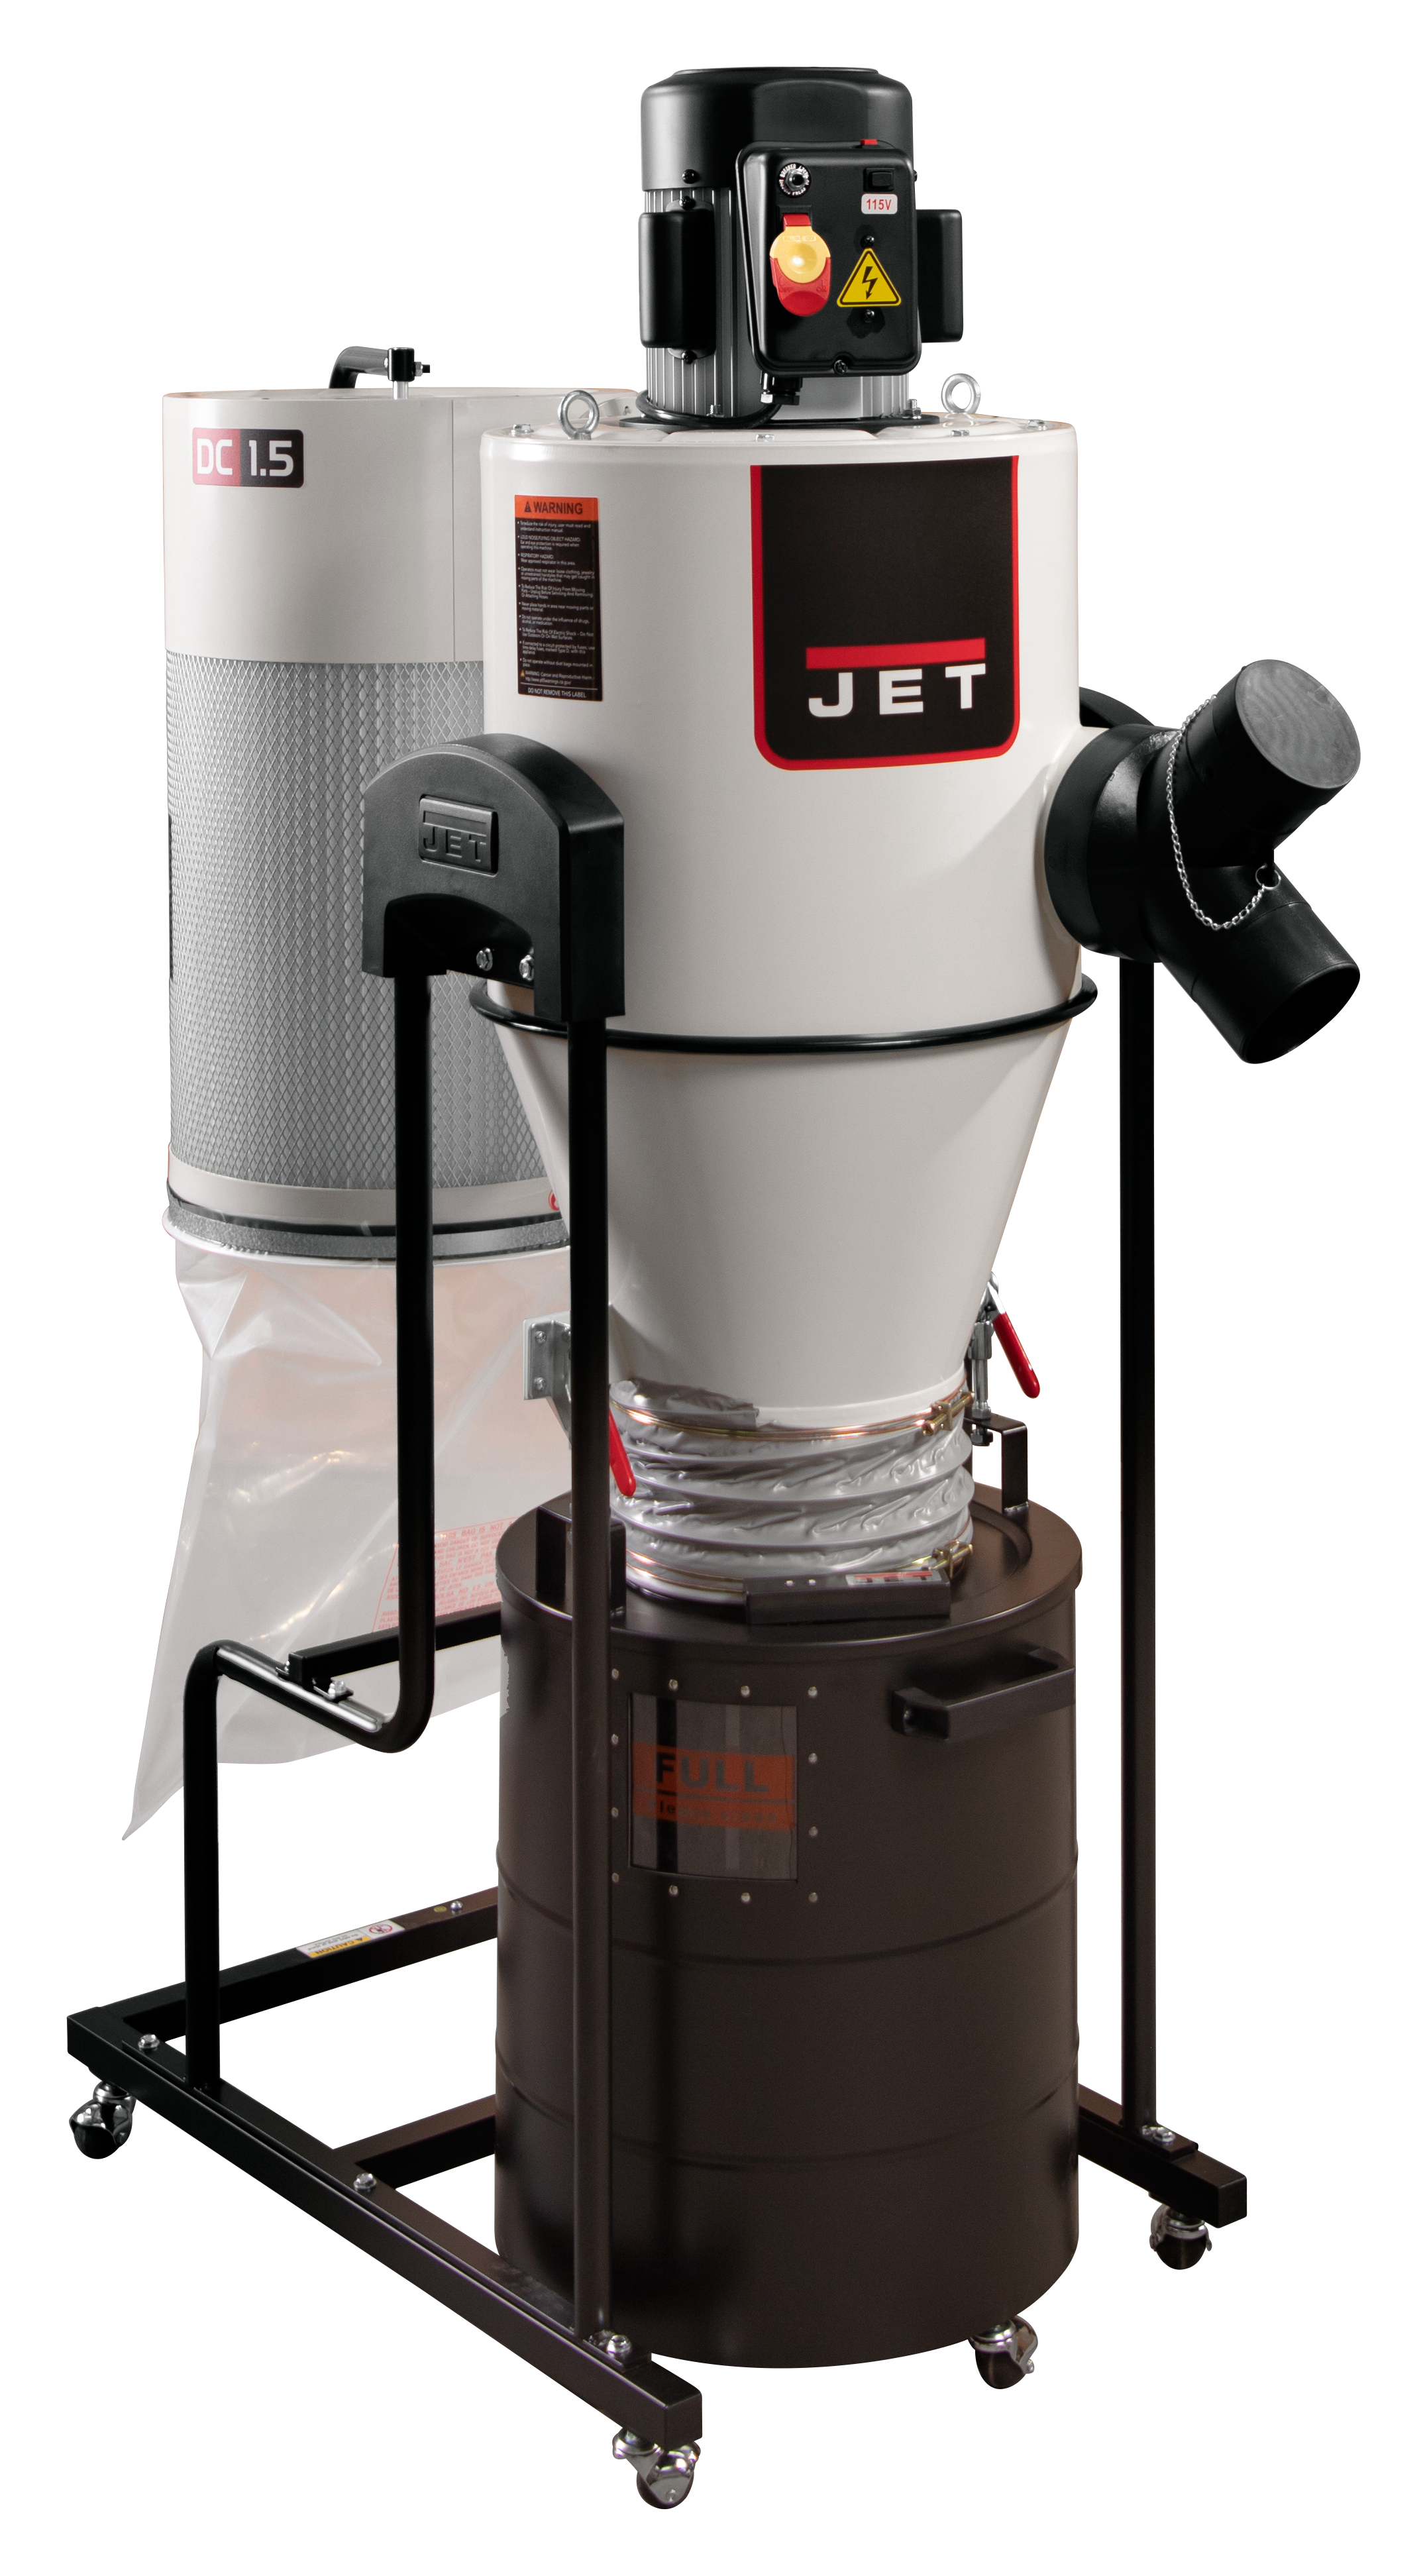 JCDC-1.5 Cyclone Dust Collector, 1.5HP, 115V